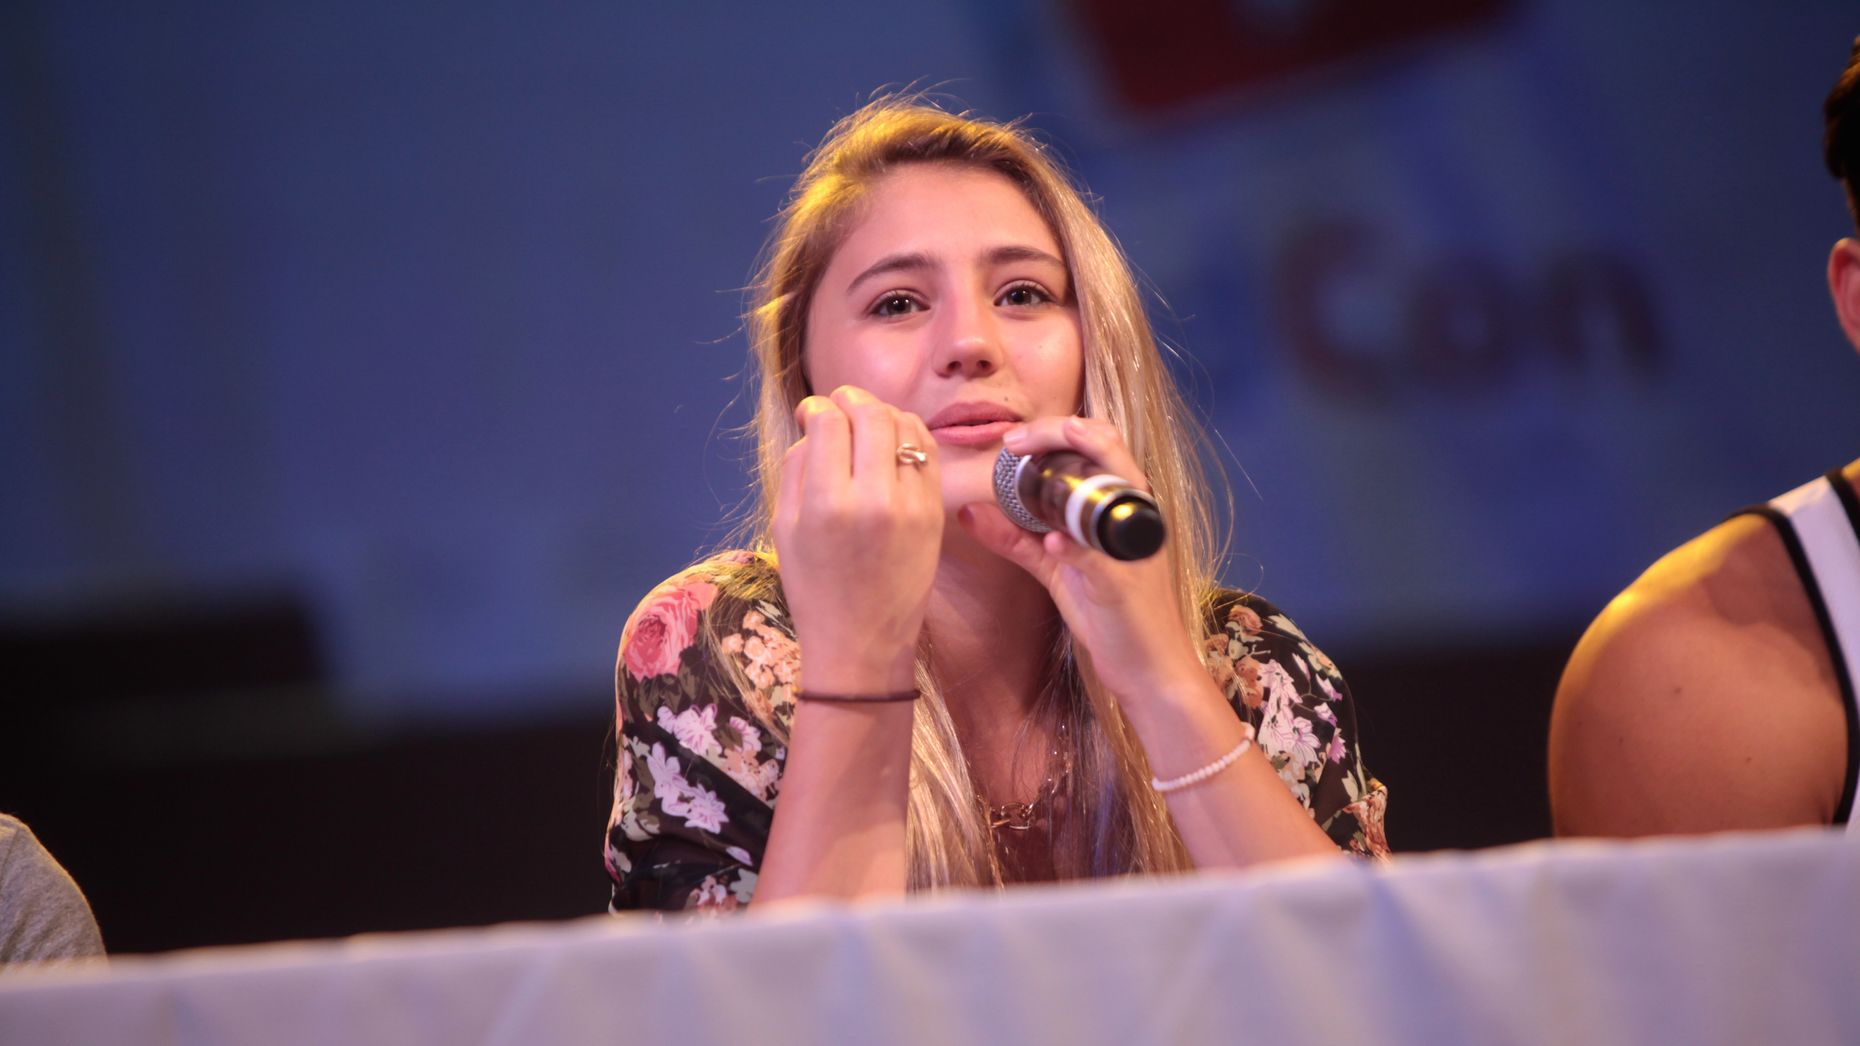 Lia Marie Johnson. Photo by Flickr/Gage Skidmore.